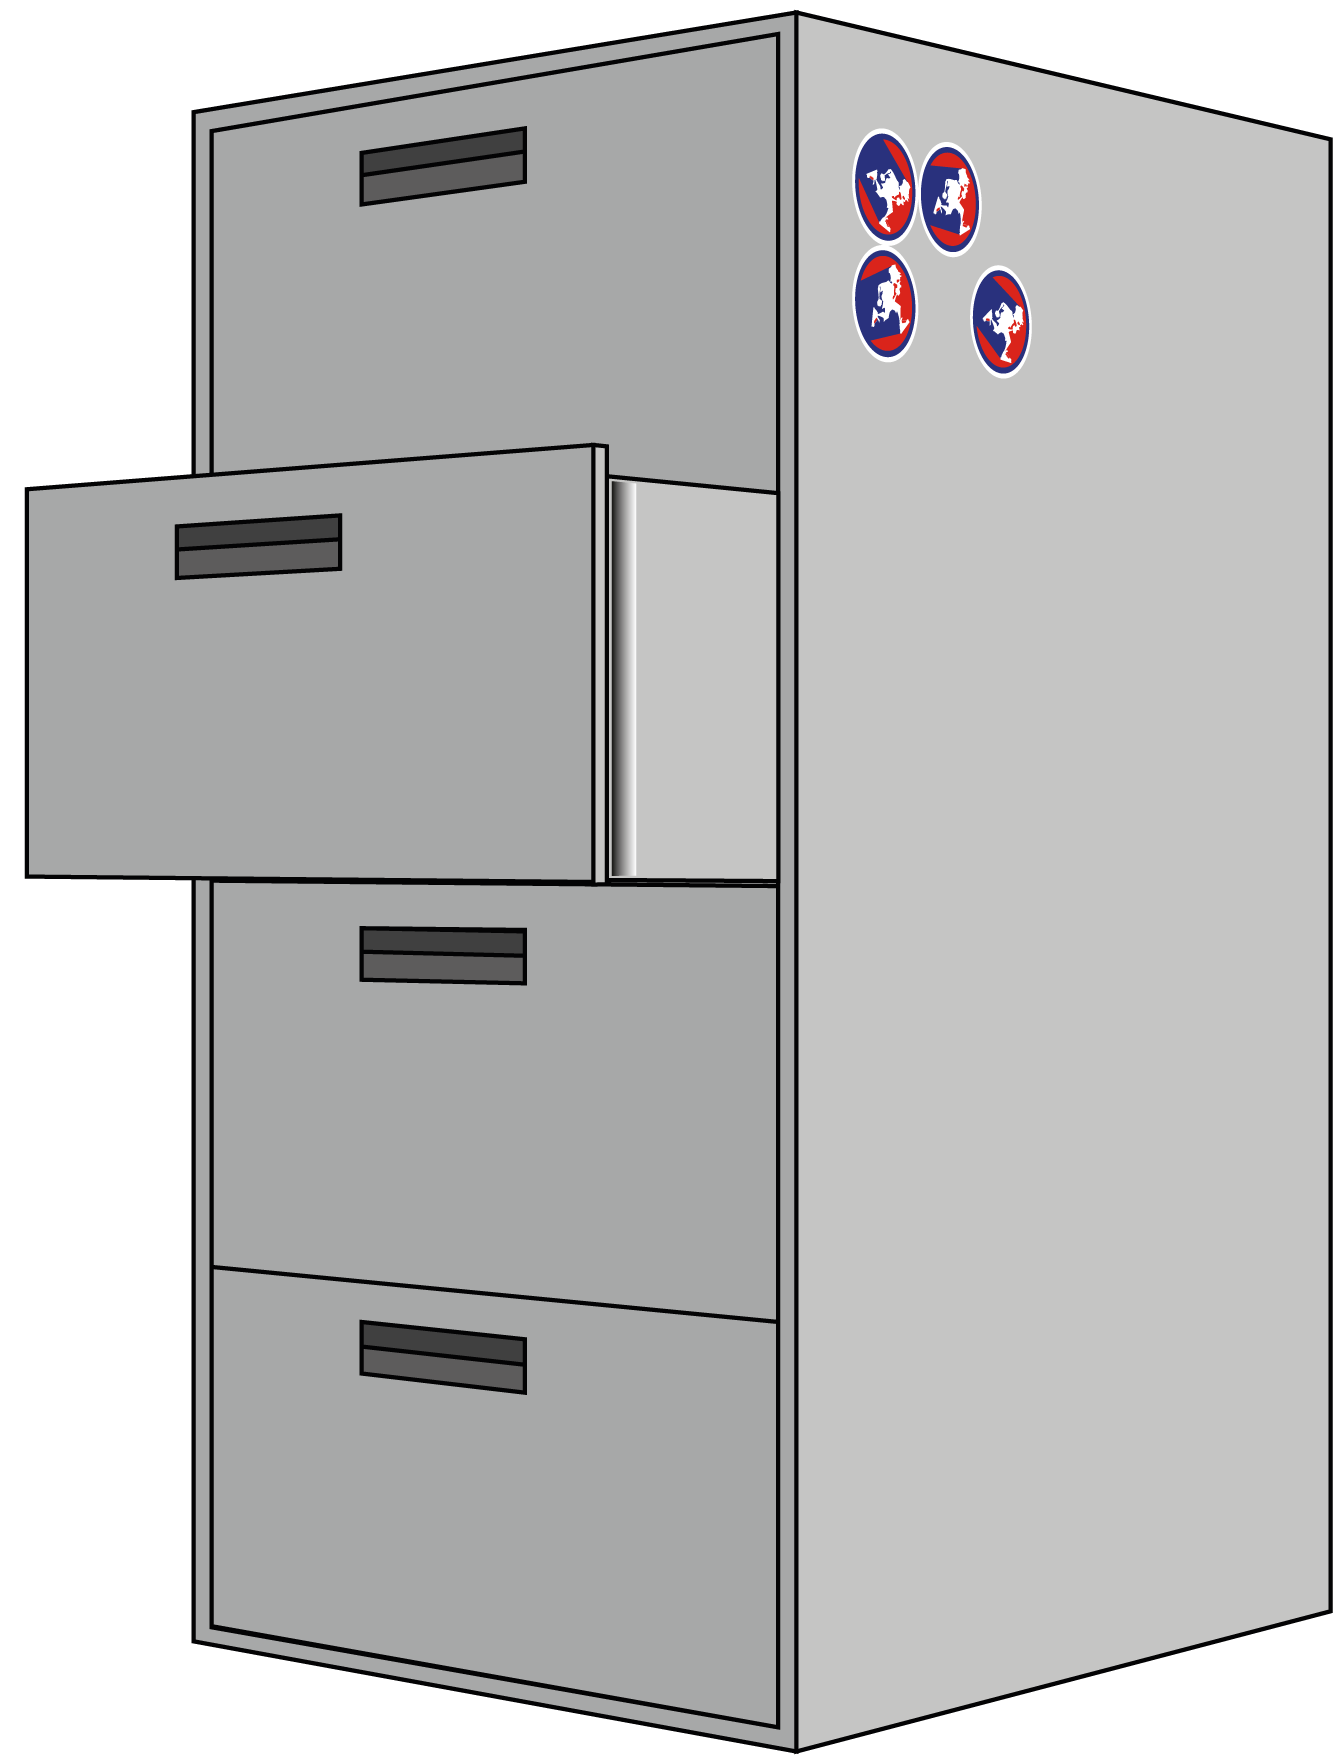 cabinet2_illustration